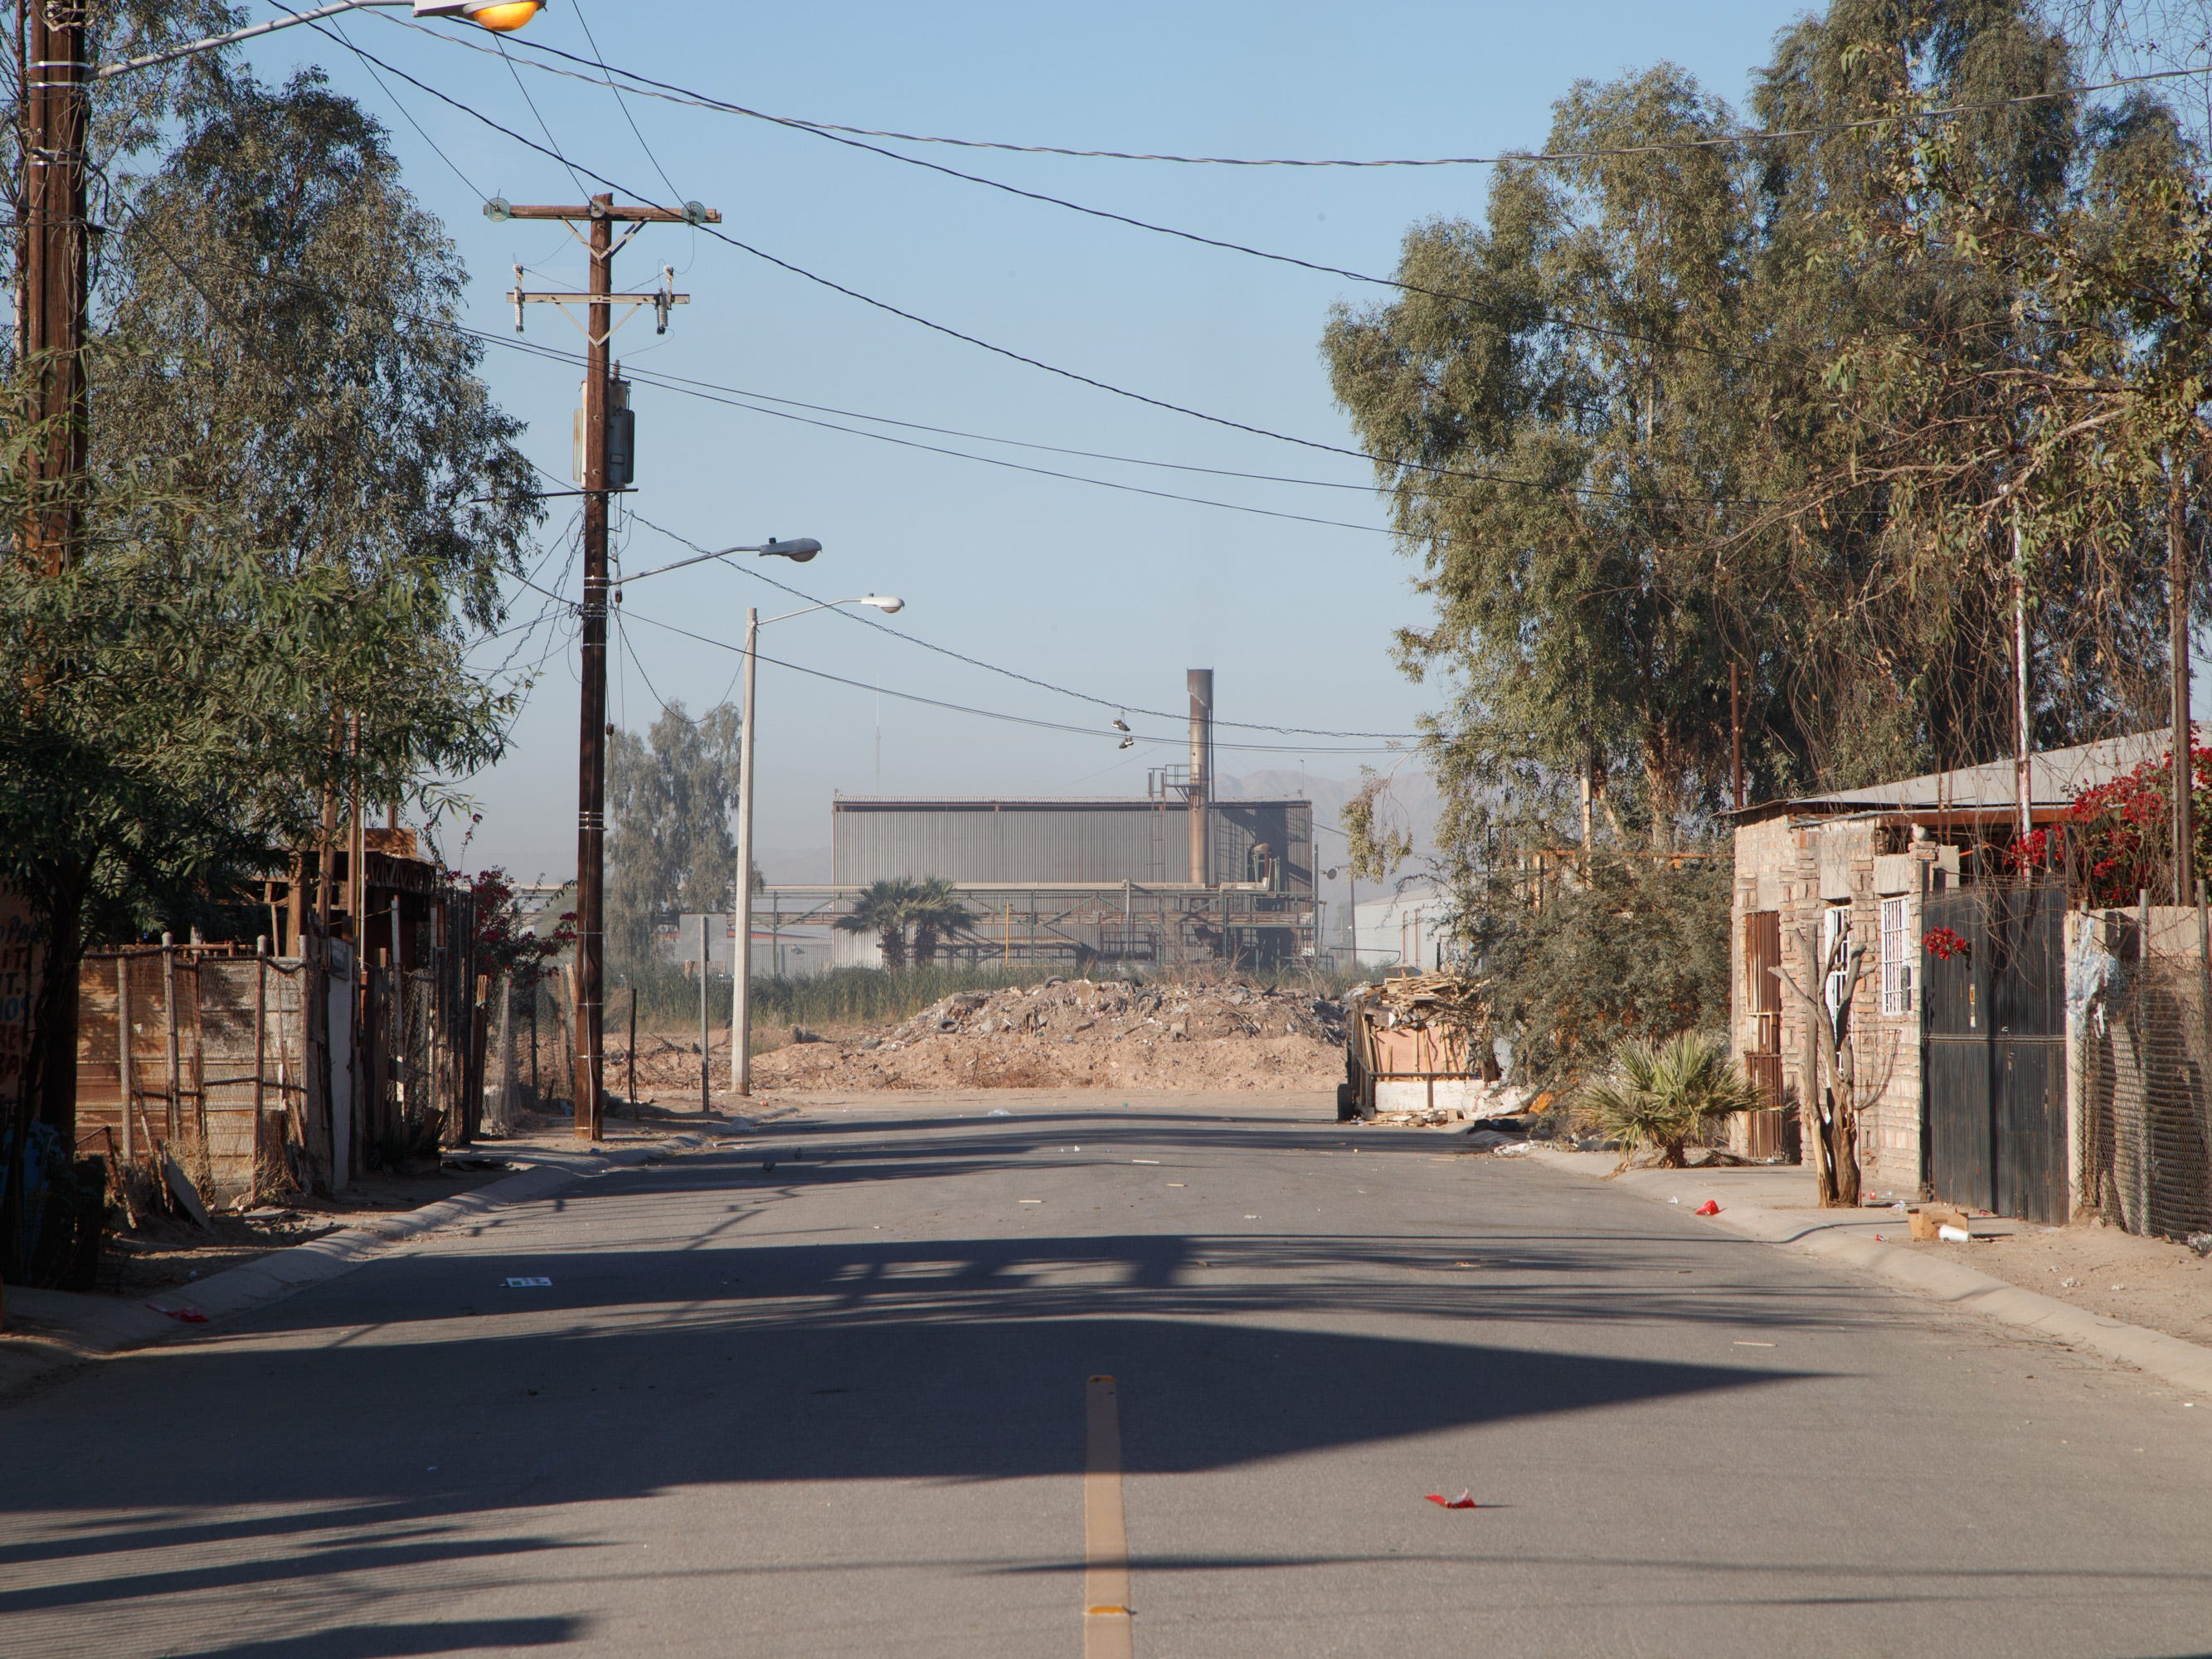 The Industrias Zahori factory stands at the end of a street in the Mexicali neighborhood Colonia Vicente Guerrero.